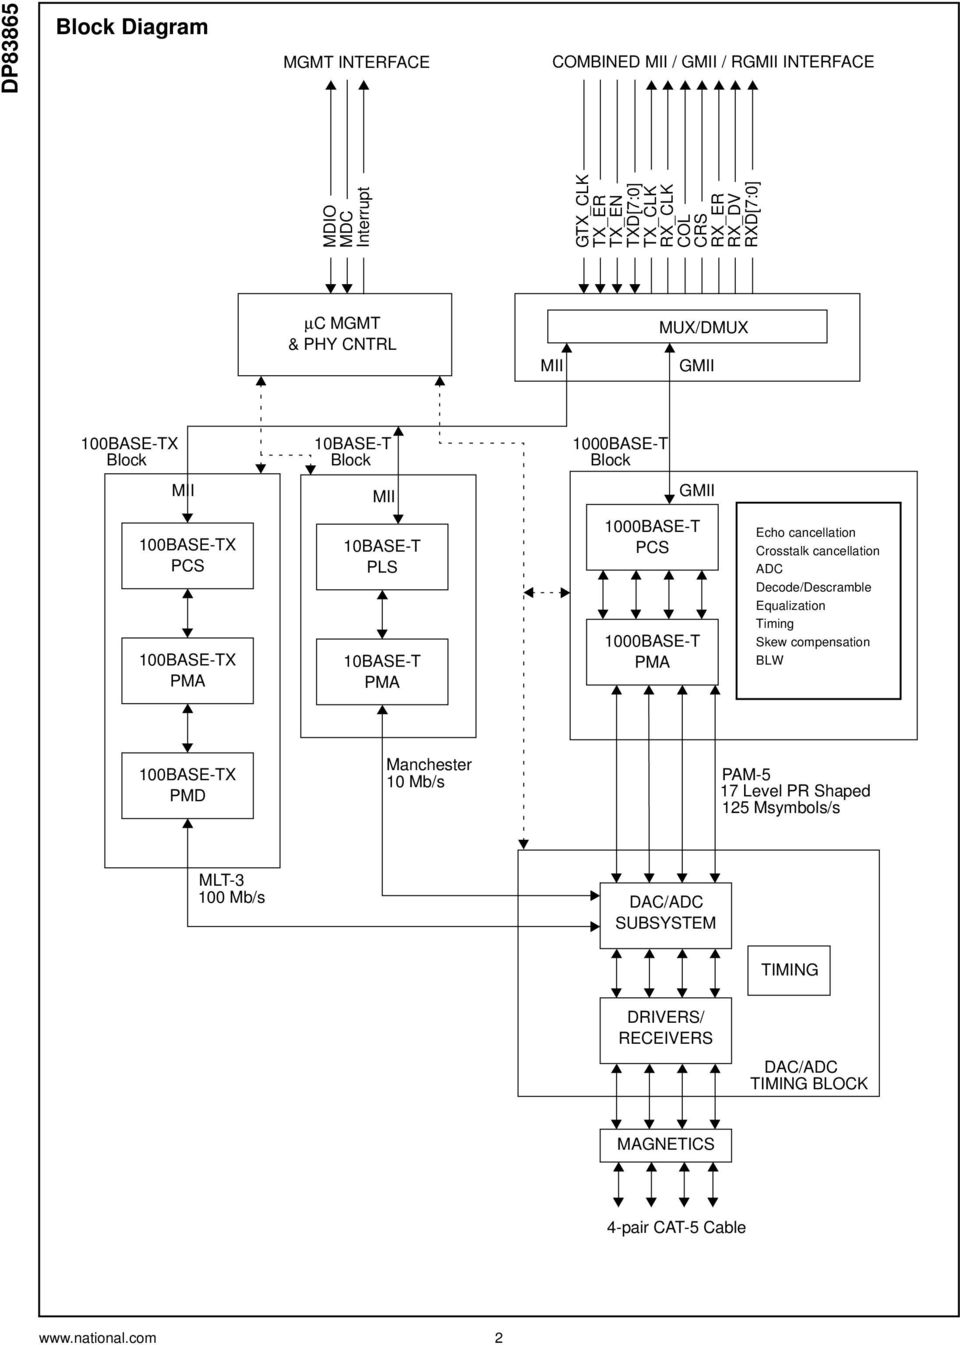 Dp83865 Gig Phyter V 10 100 1000 Ethernet Physical Layer Pdf Block Diagram Of The Coding Sublayer Pcs Ip Core 1base T Pma Echo Cancellation Crosstalk Adc Decode Descramble Equalization Timing Skew Compensation